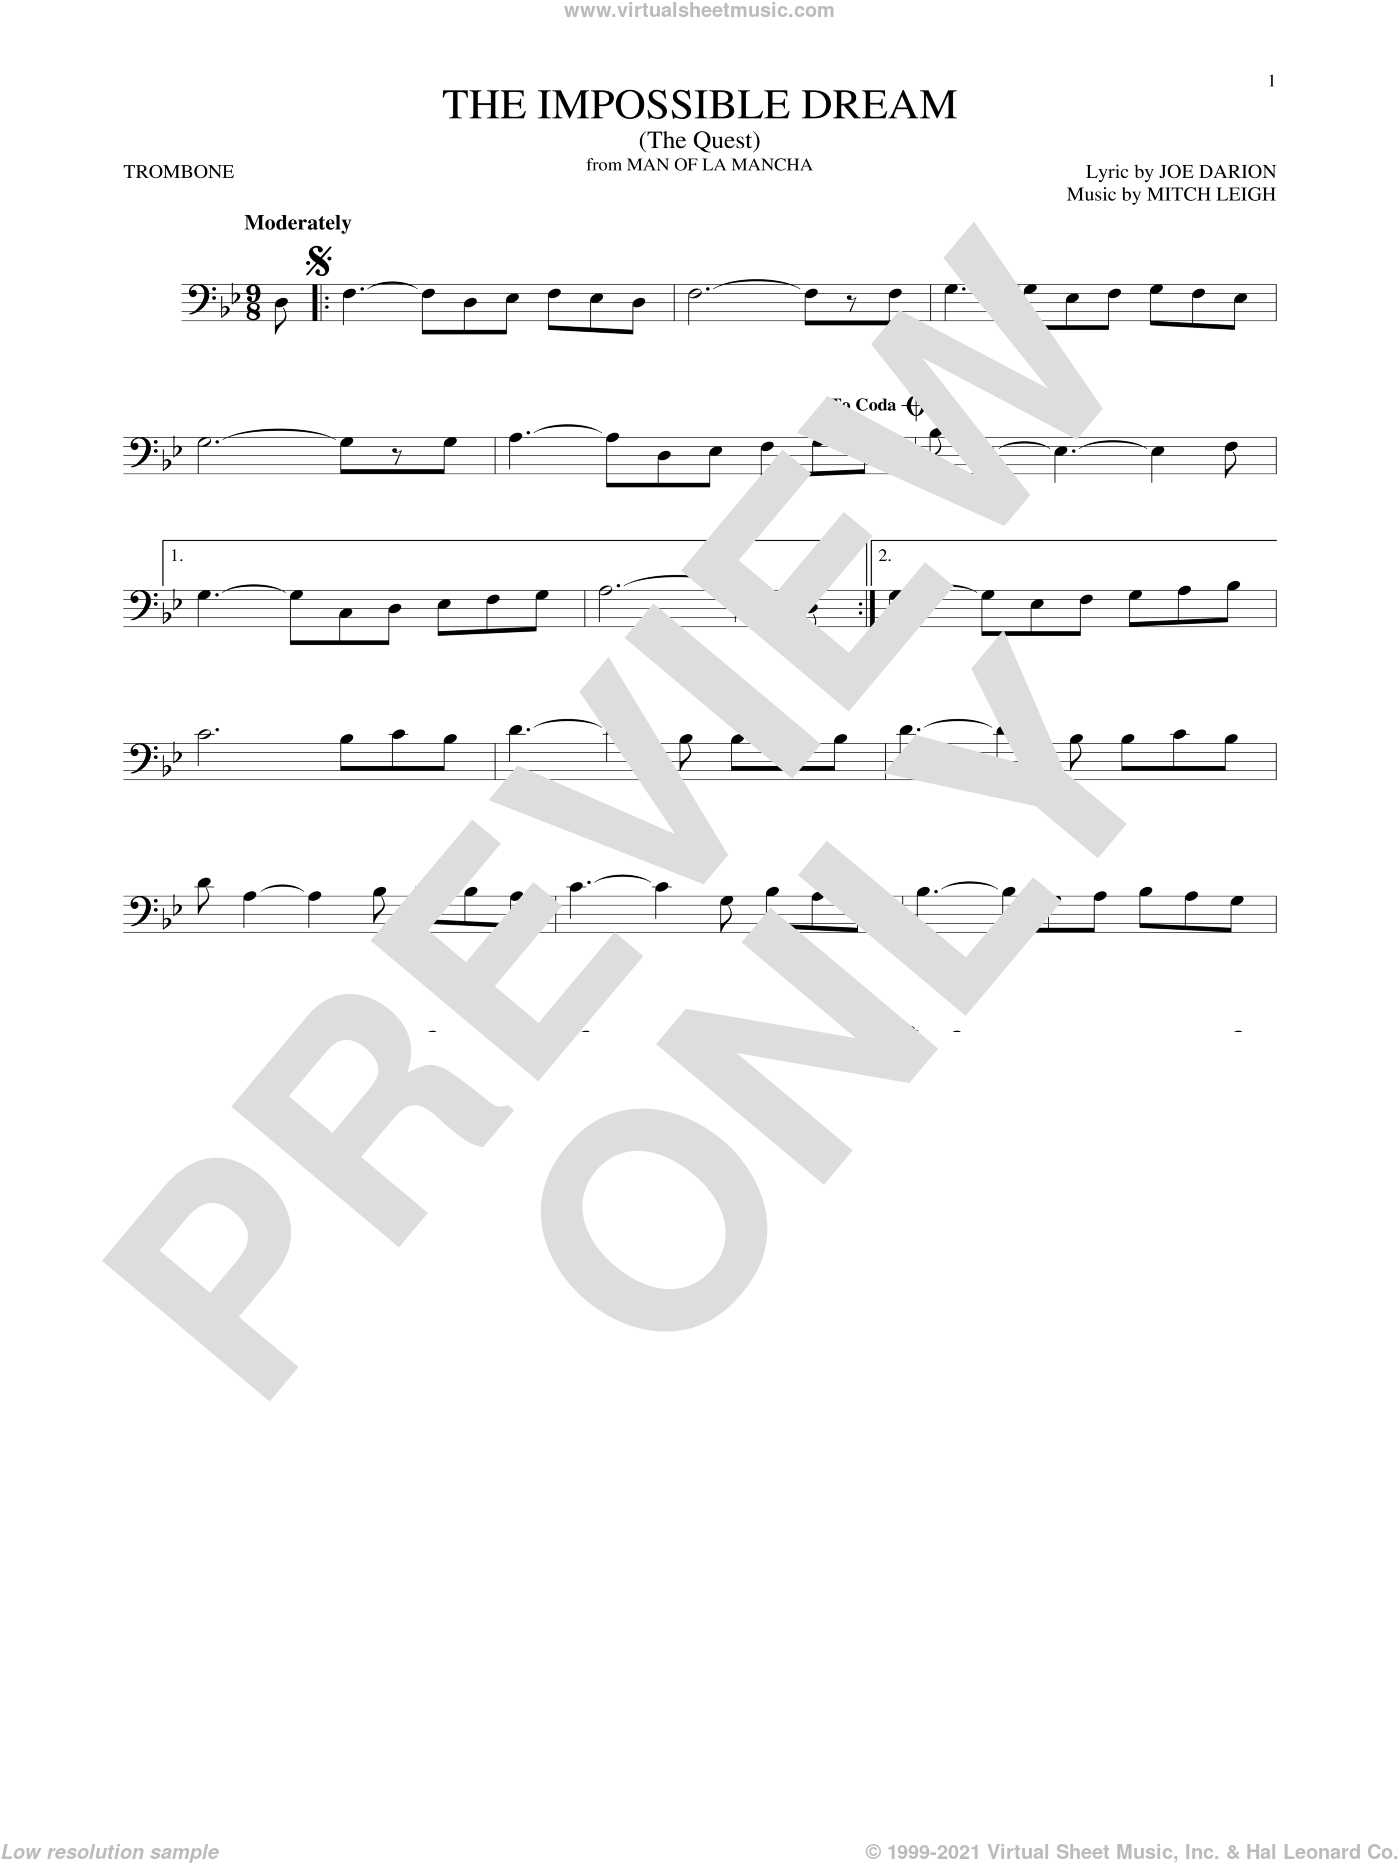 The Impossible Dream (The Quest) sheet music for trombone solo by Joe Darion and Mitch Leigh, intermediate skill level